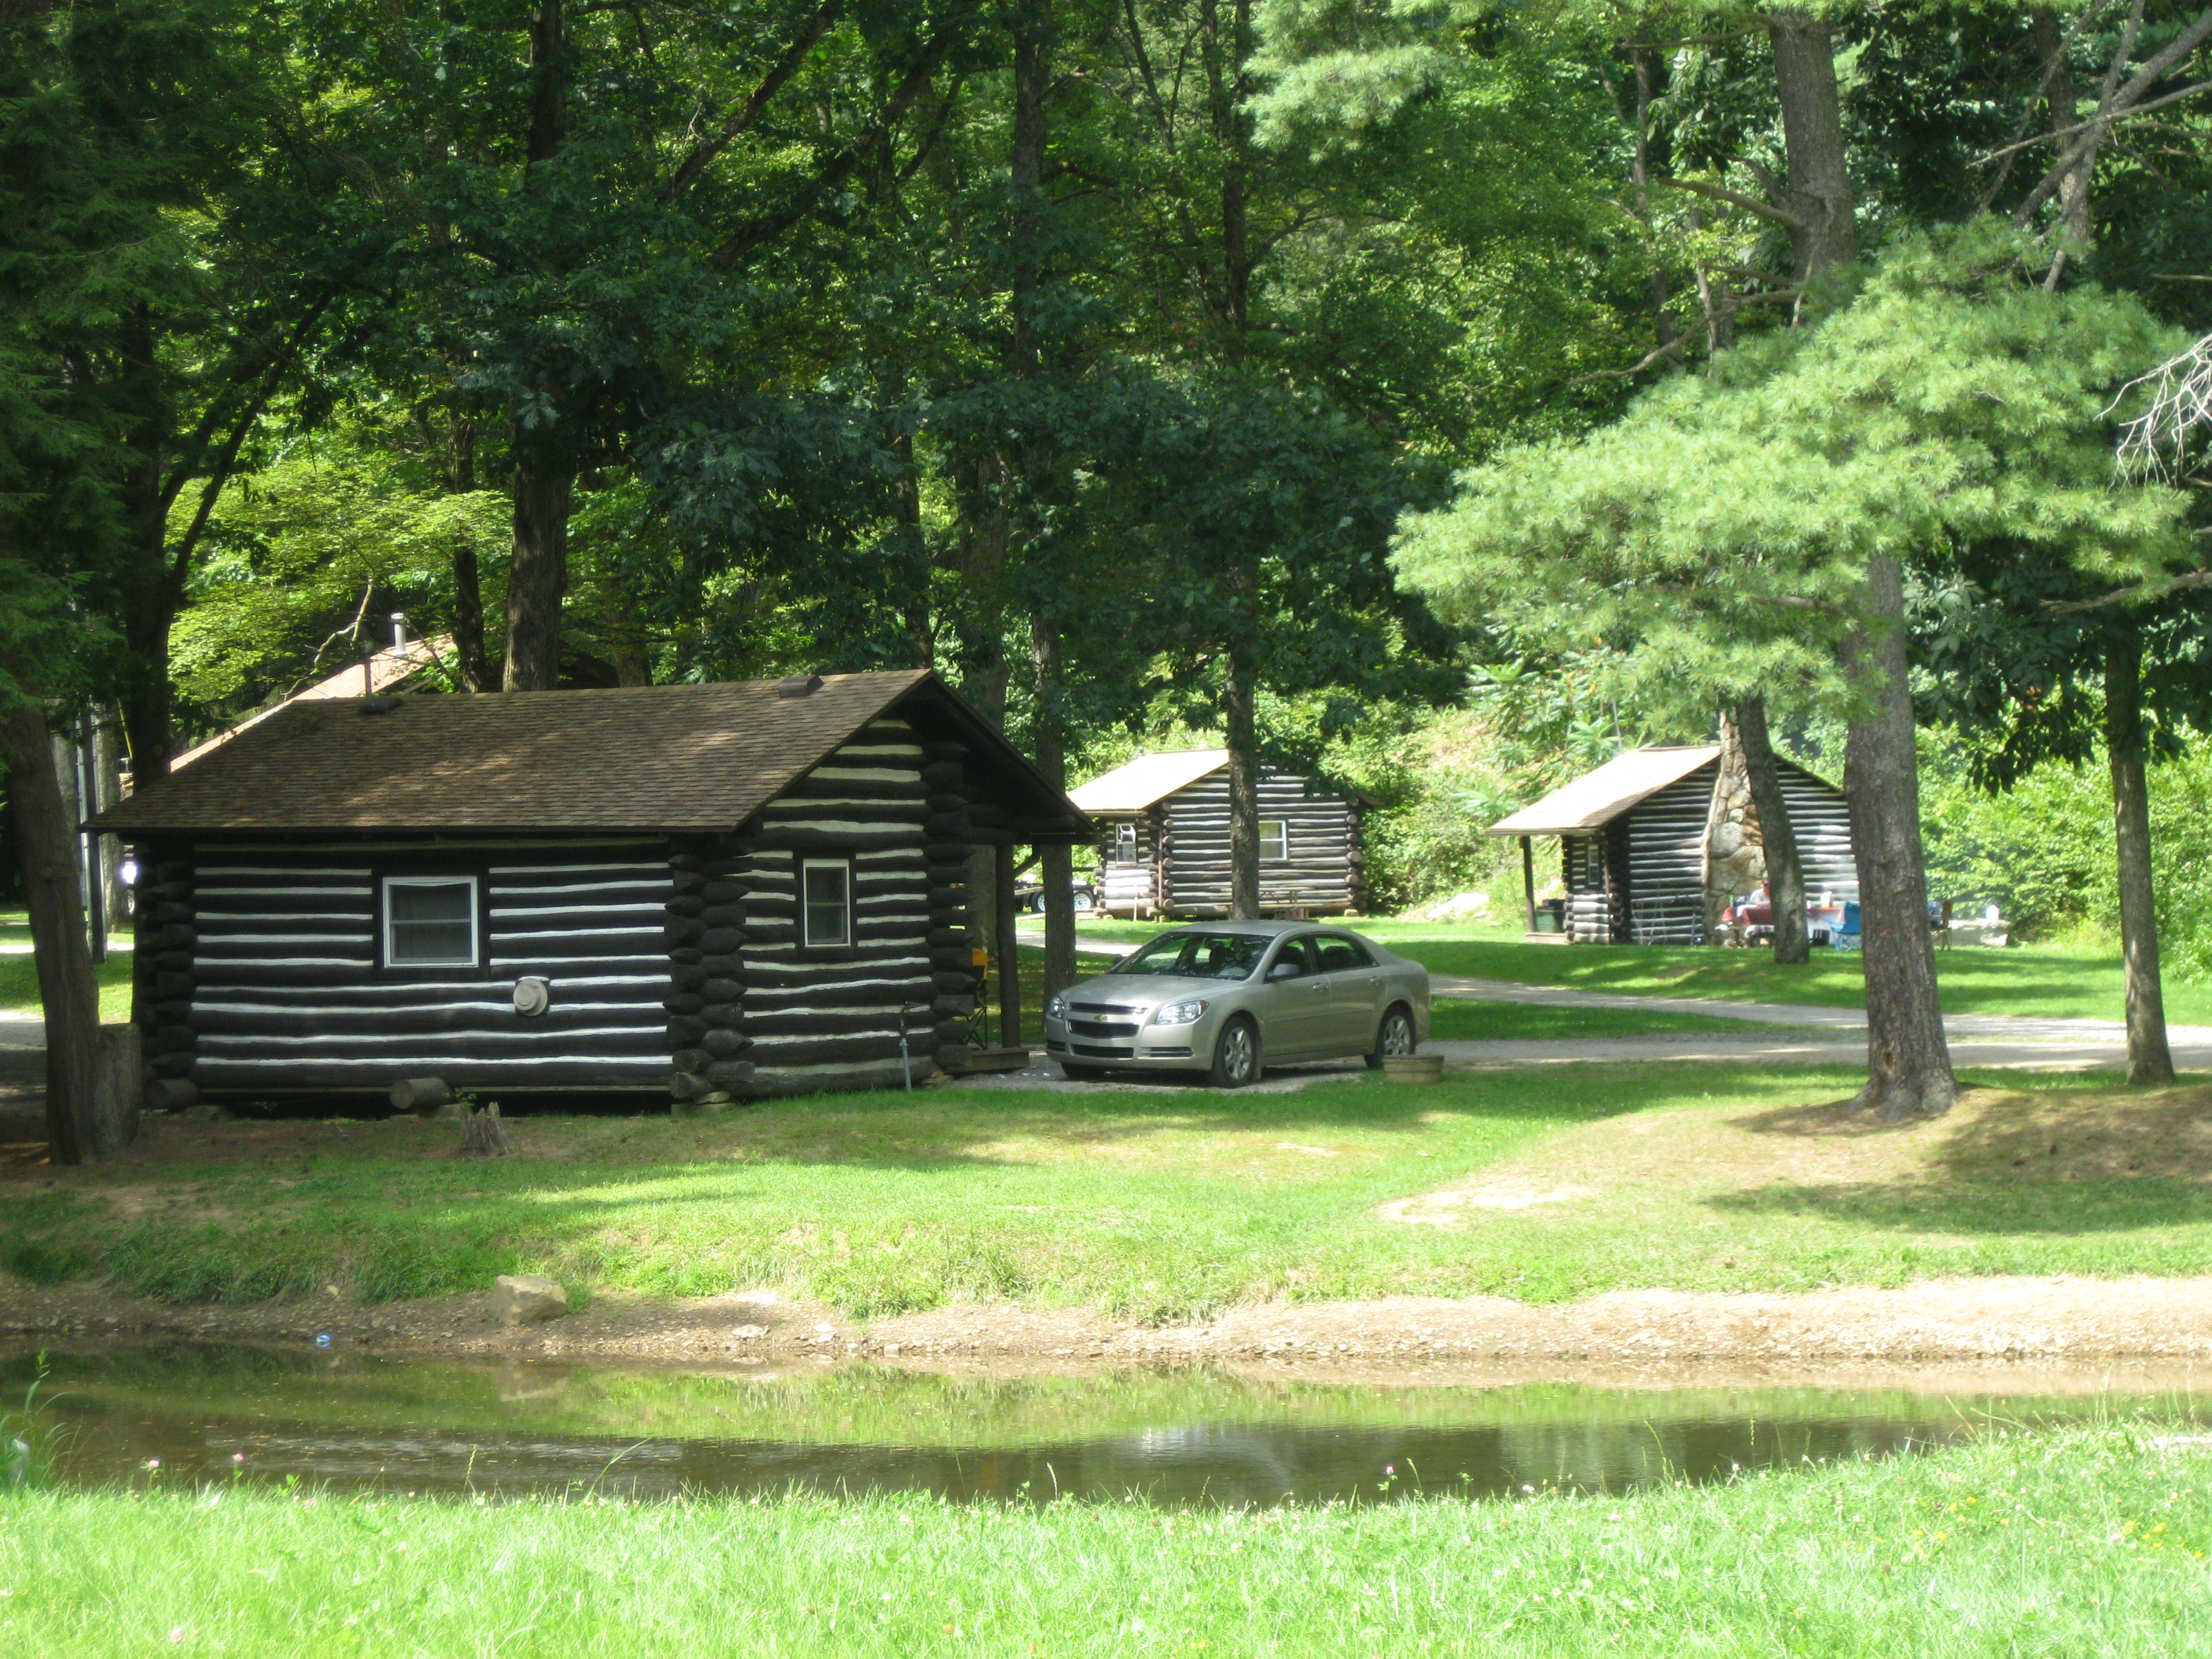 File:Cook Forest State Park Indian Cabins.JPG - Wikimedia Commons